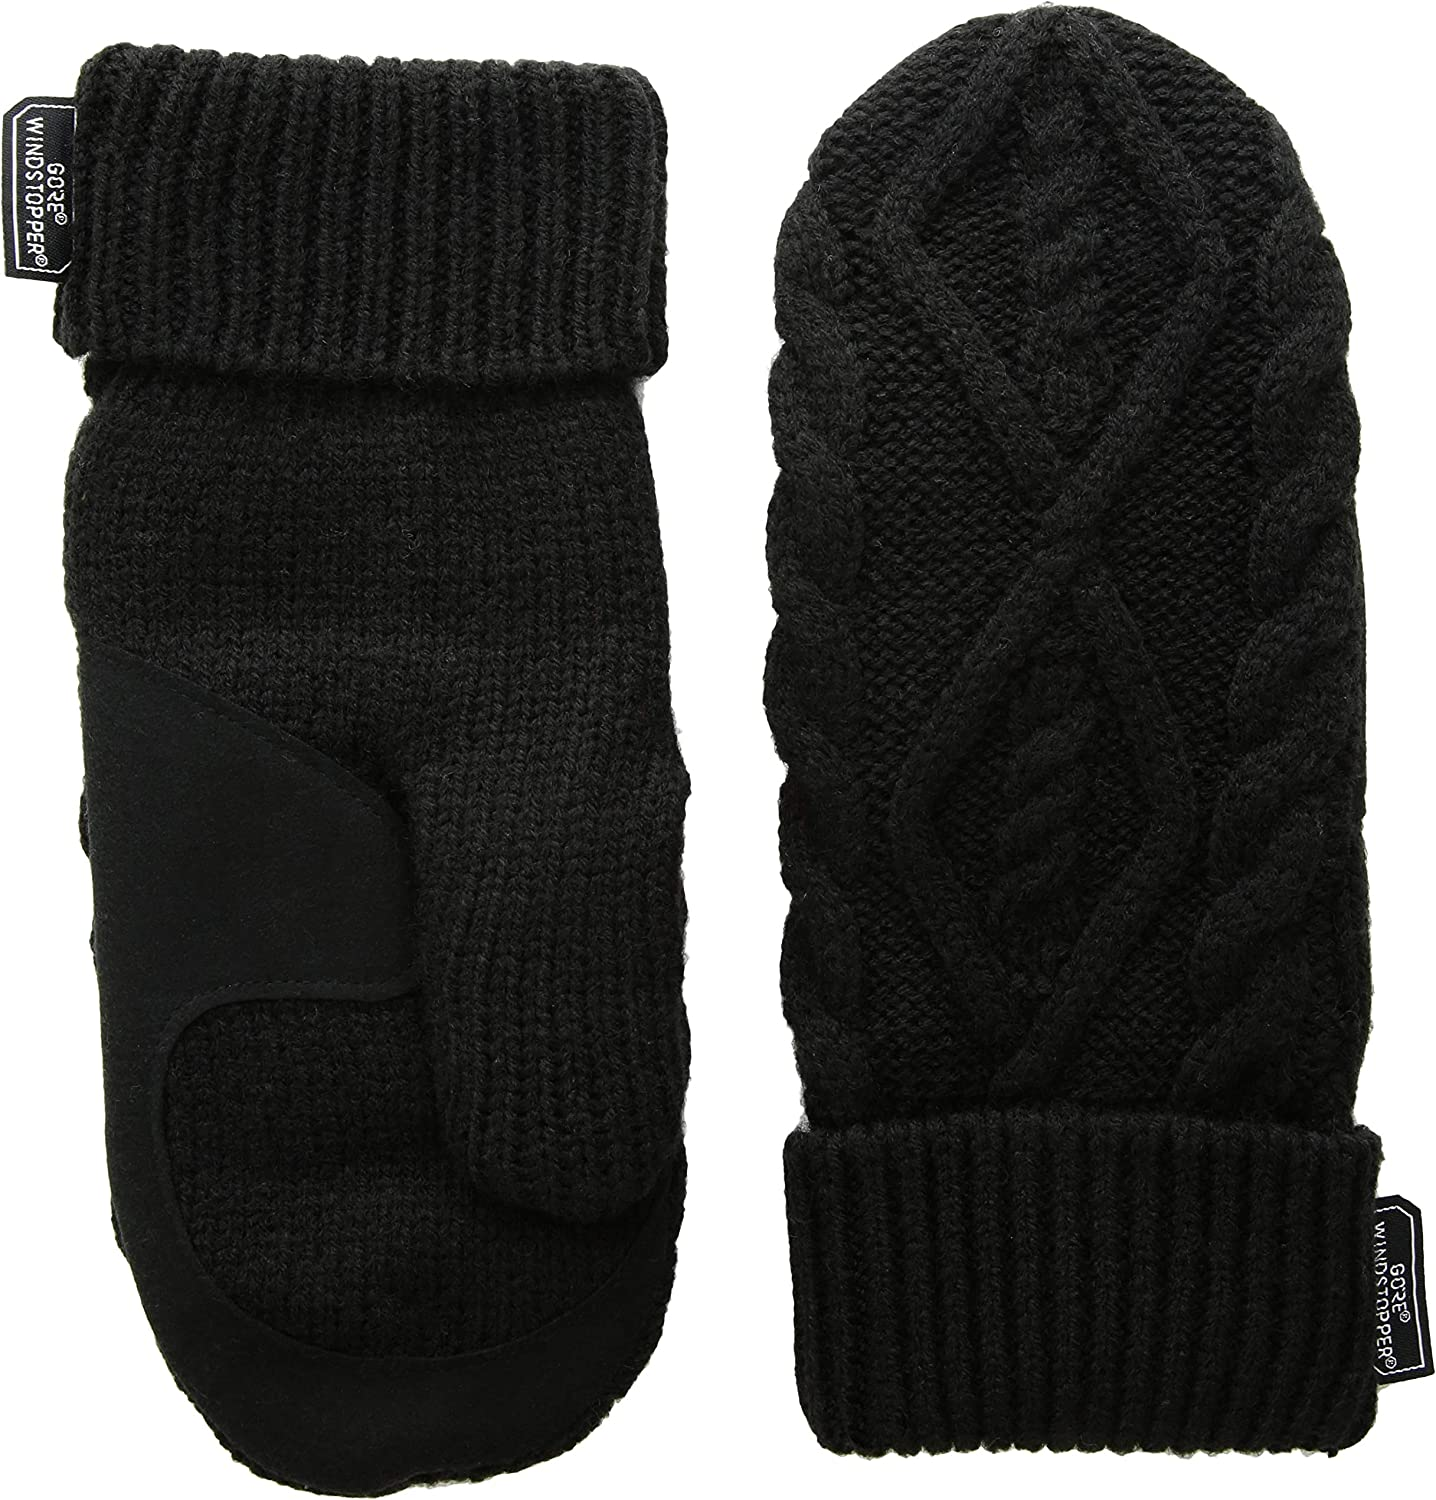 Outdoor Research Women's W's Lodgeside Mitts